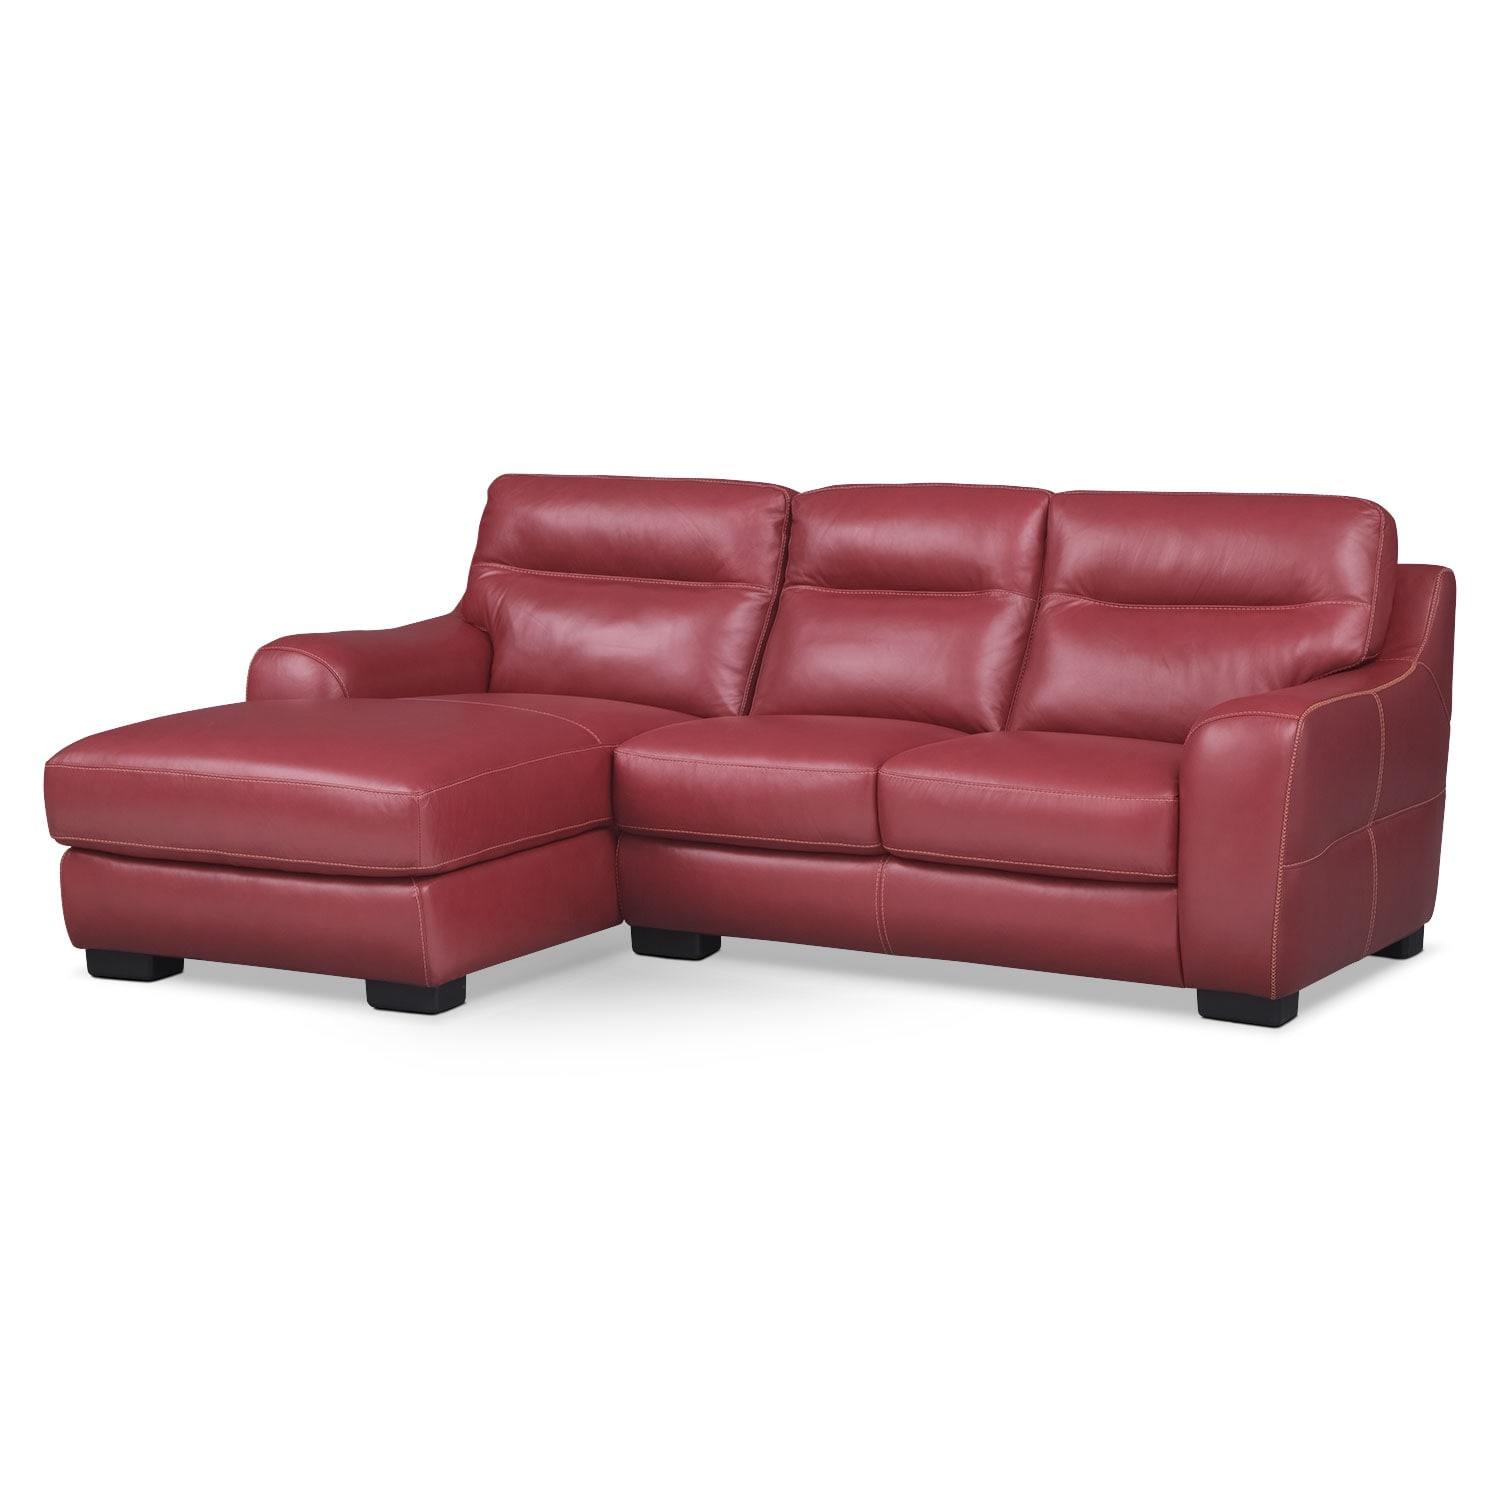 Living Room Furniture - Rocco Red 2 Pc. Left-Facing Chaise Sectional